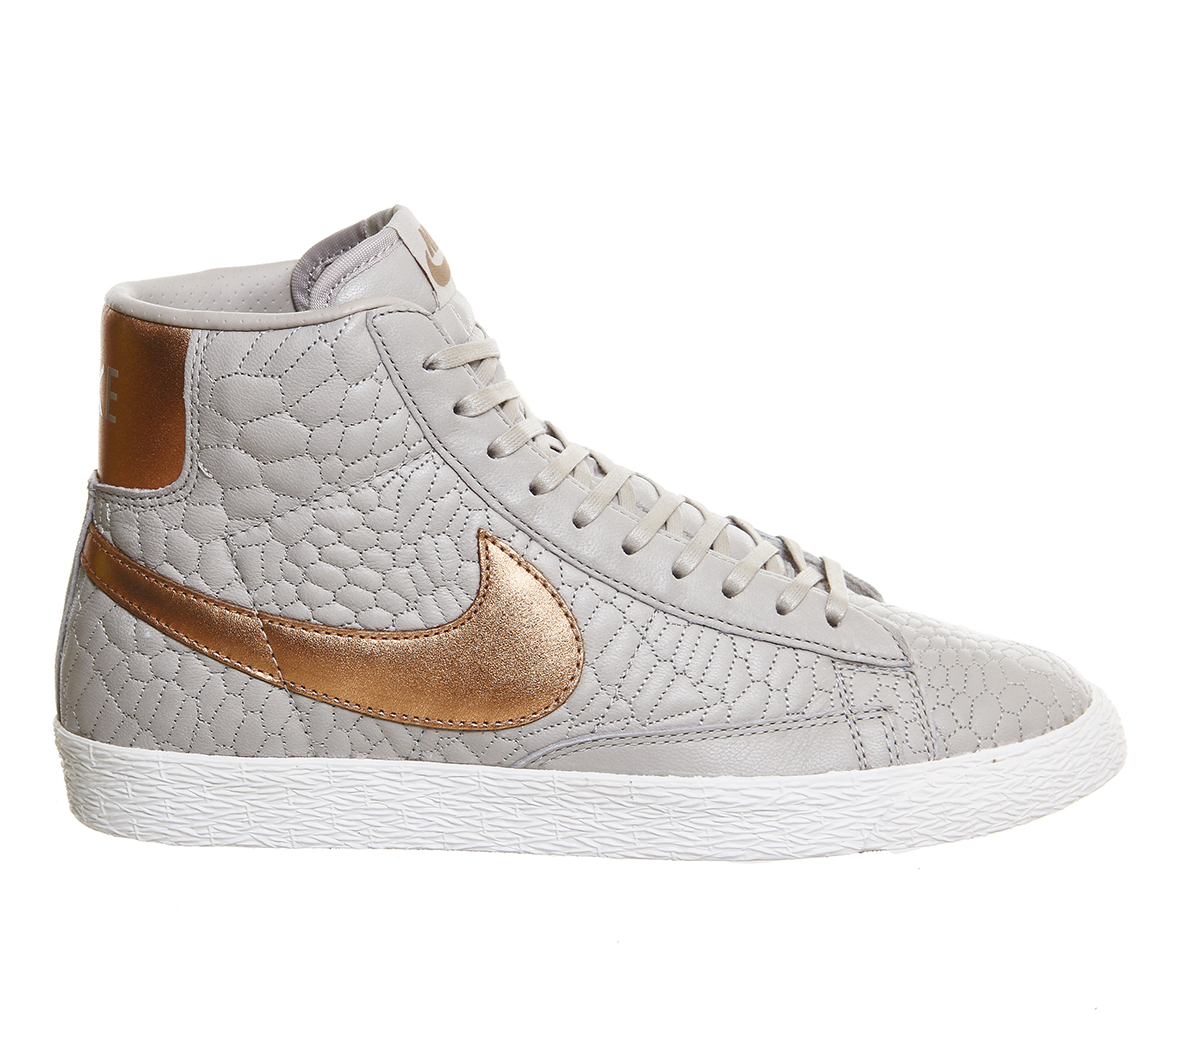 Nike Blazer Mid in Metallic Lyst